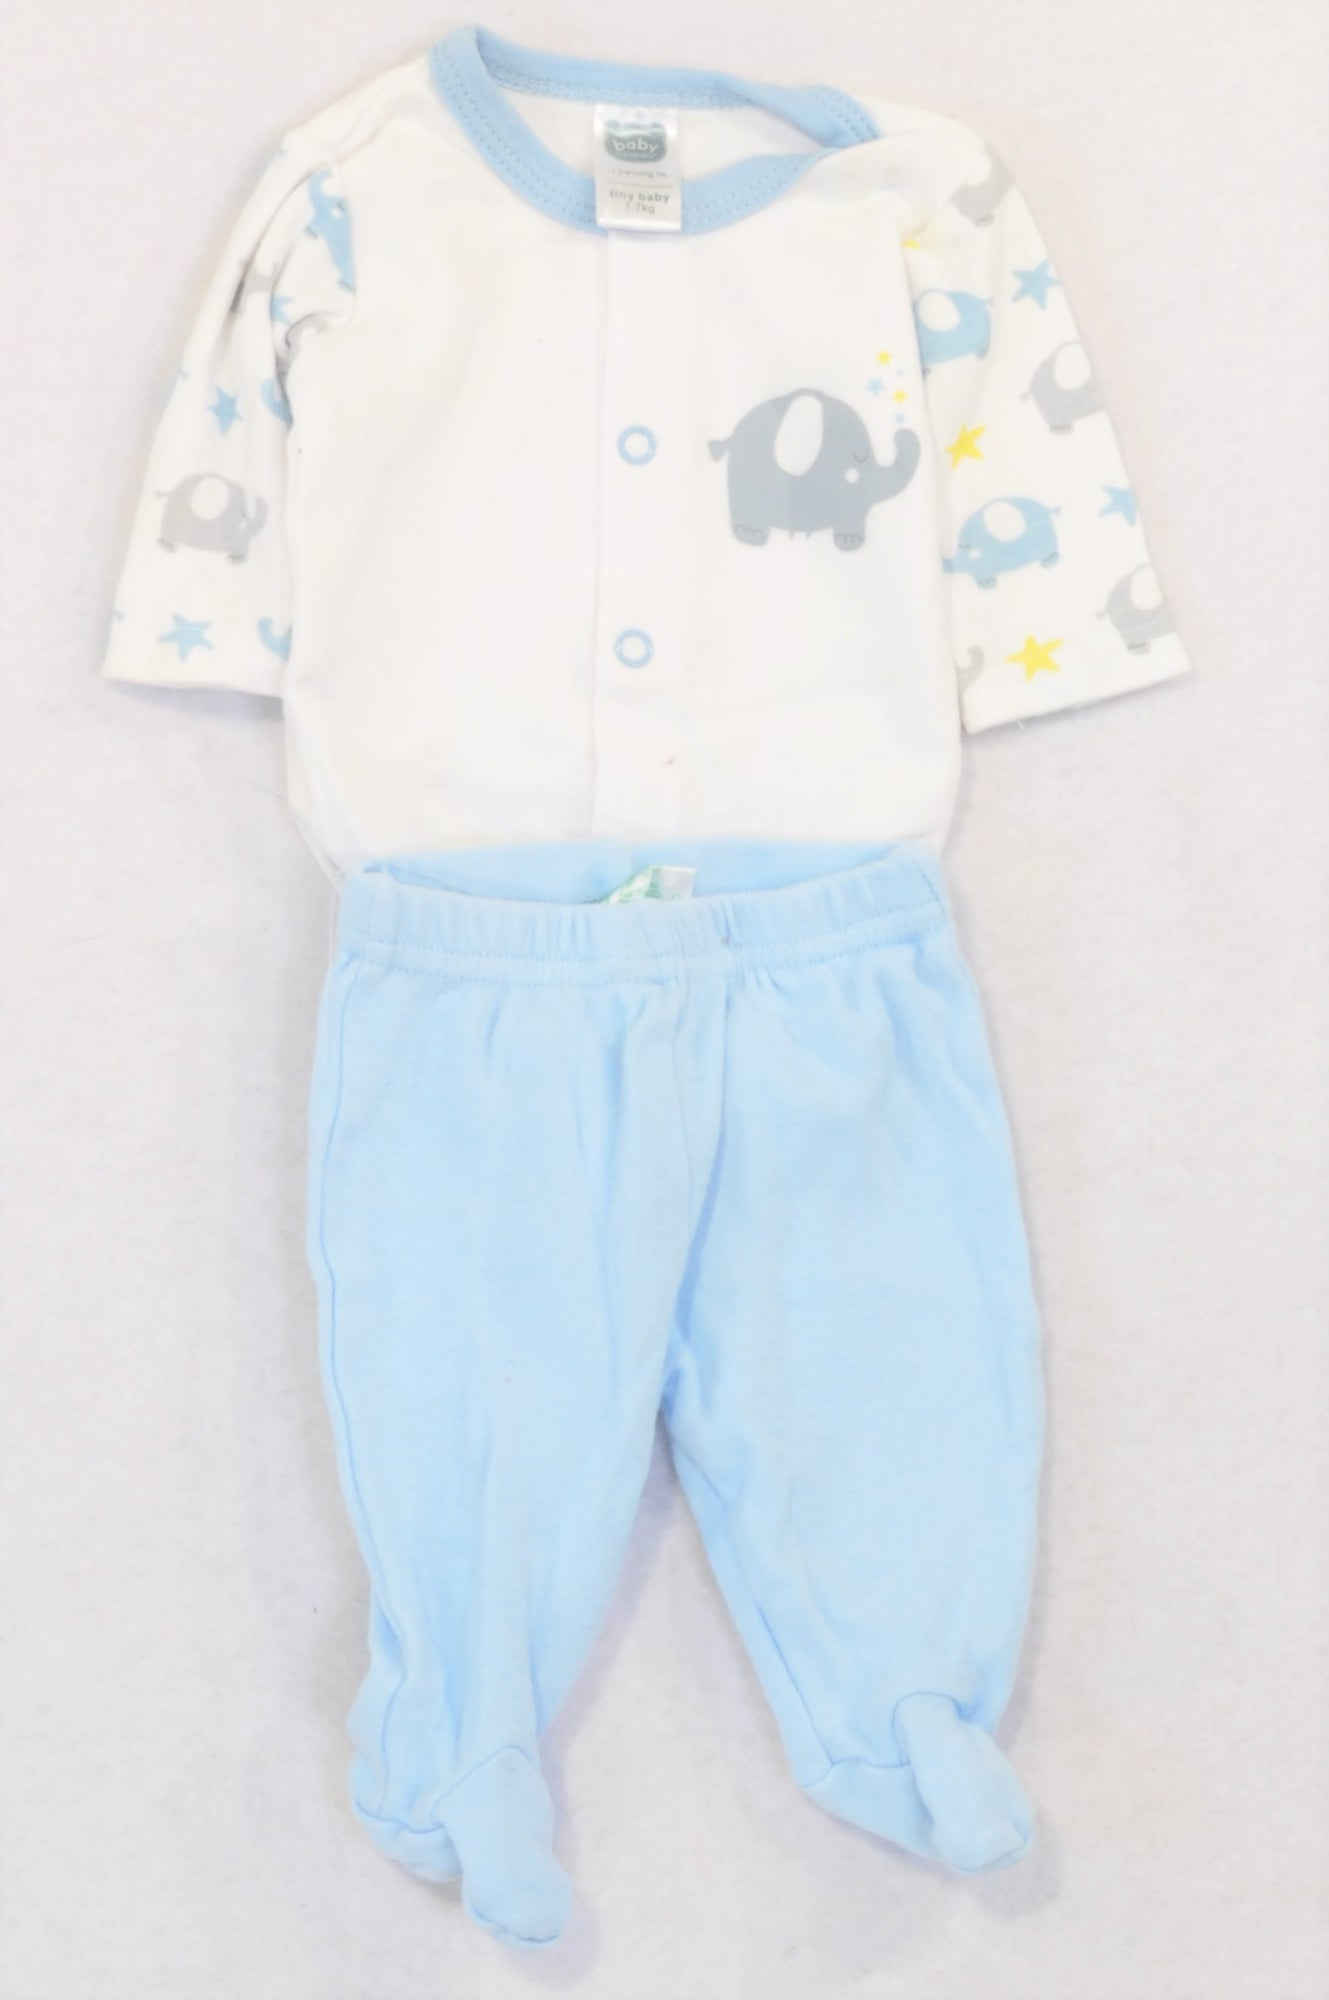 Ackermans Blue Ellie Footed Leggings Outfit Boys Tiny Baby